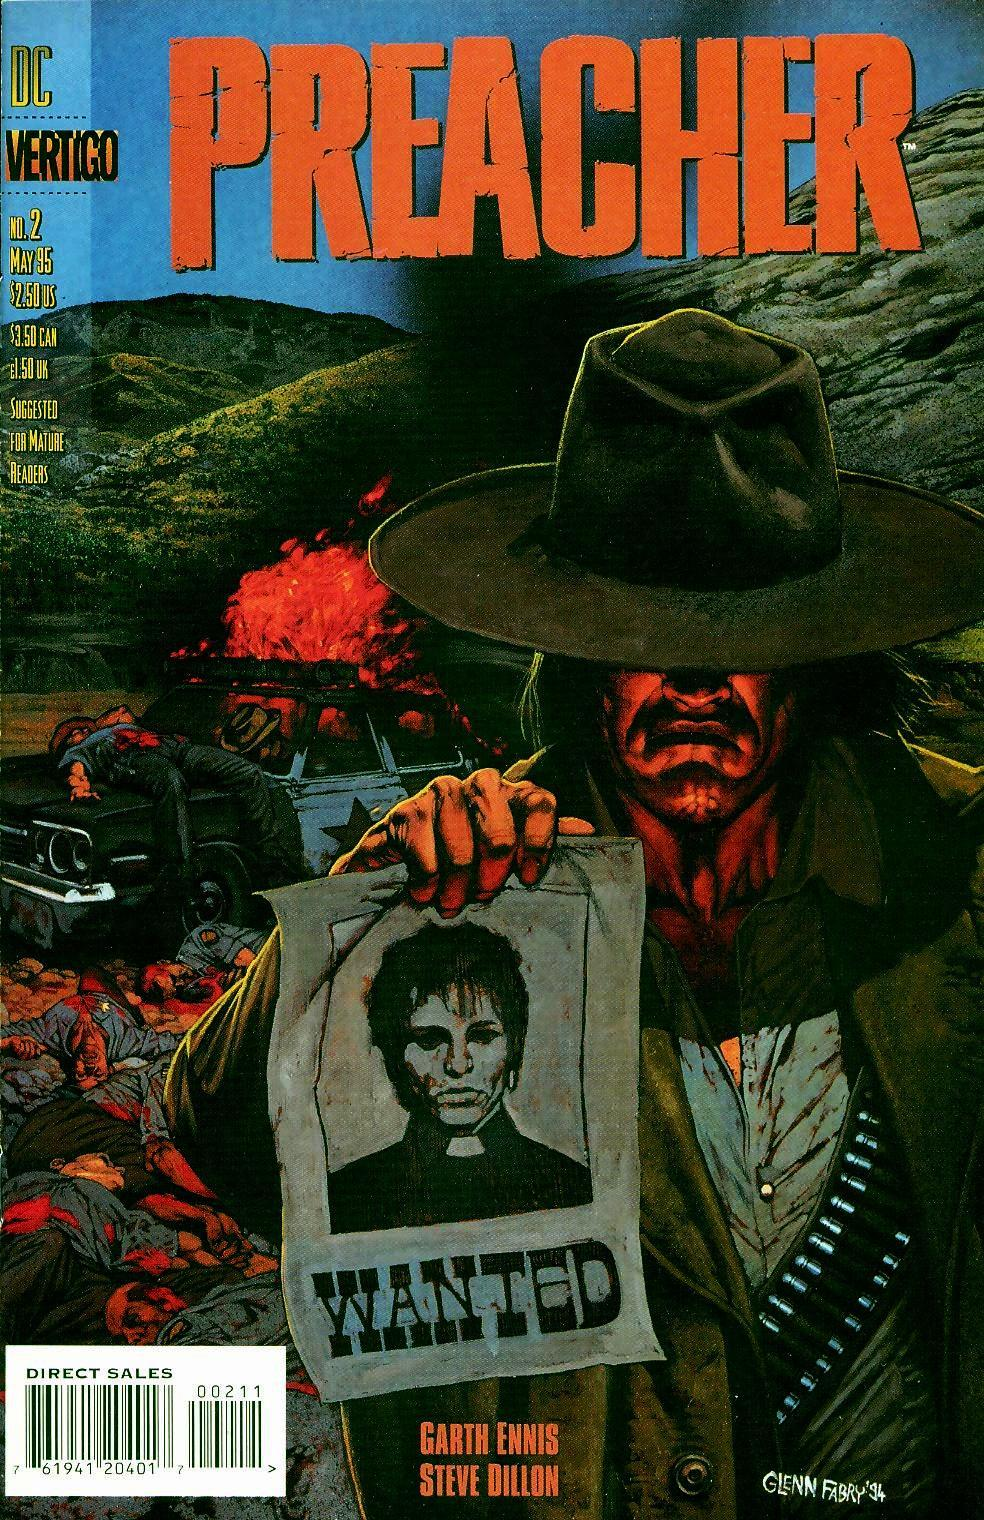 Preacher #2 cover by Glenn Fabry